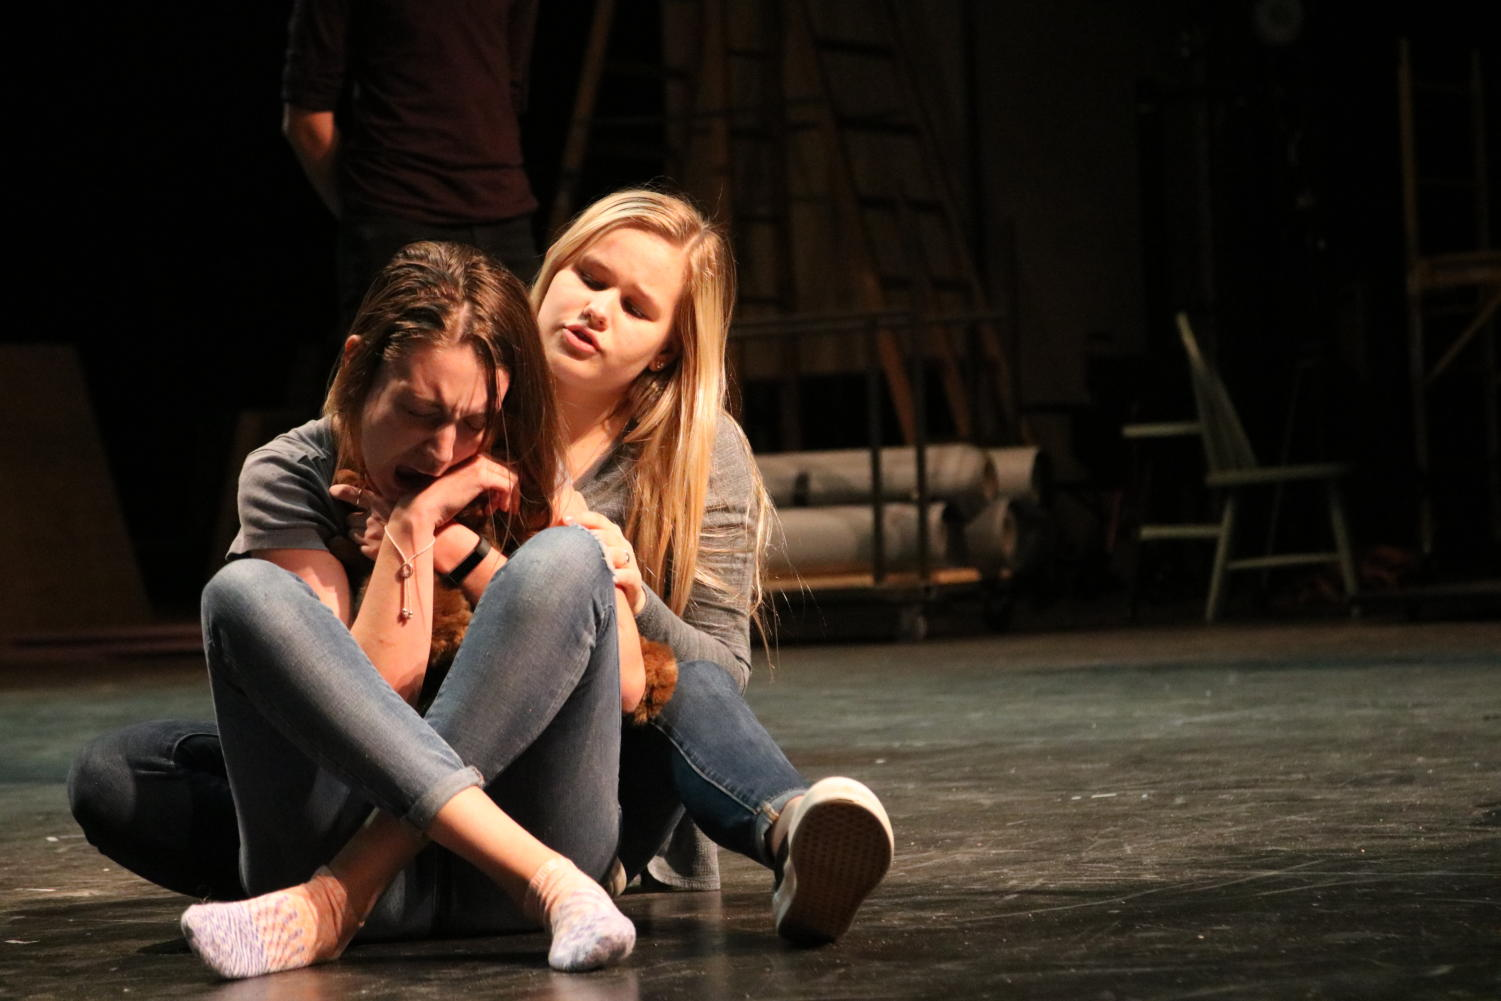 Actors Alex Fletcher and Lily Whitehurst rehearse an emotional scene